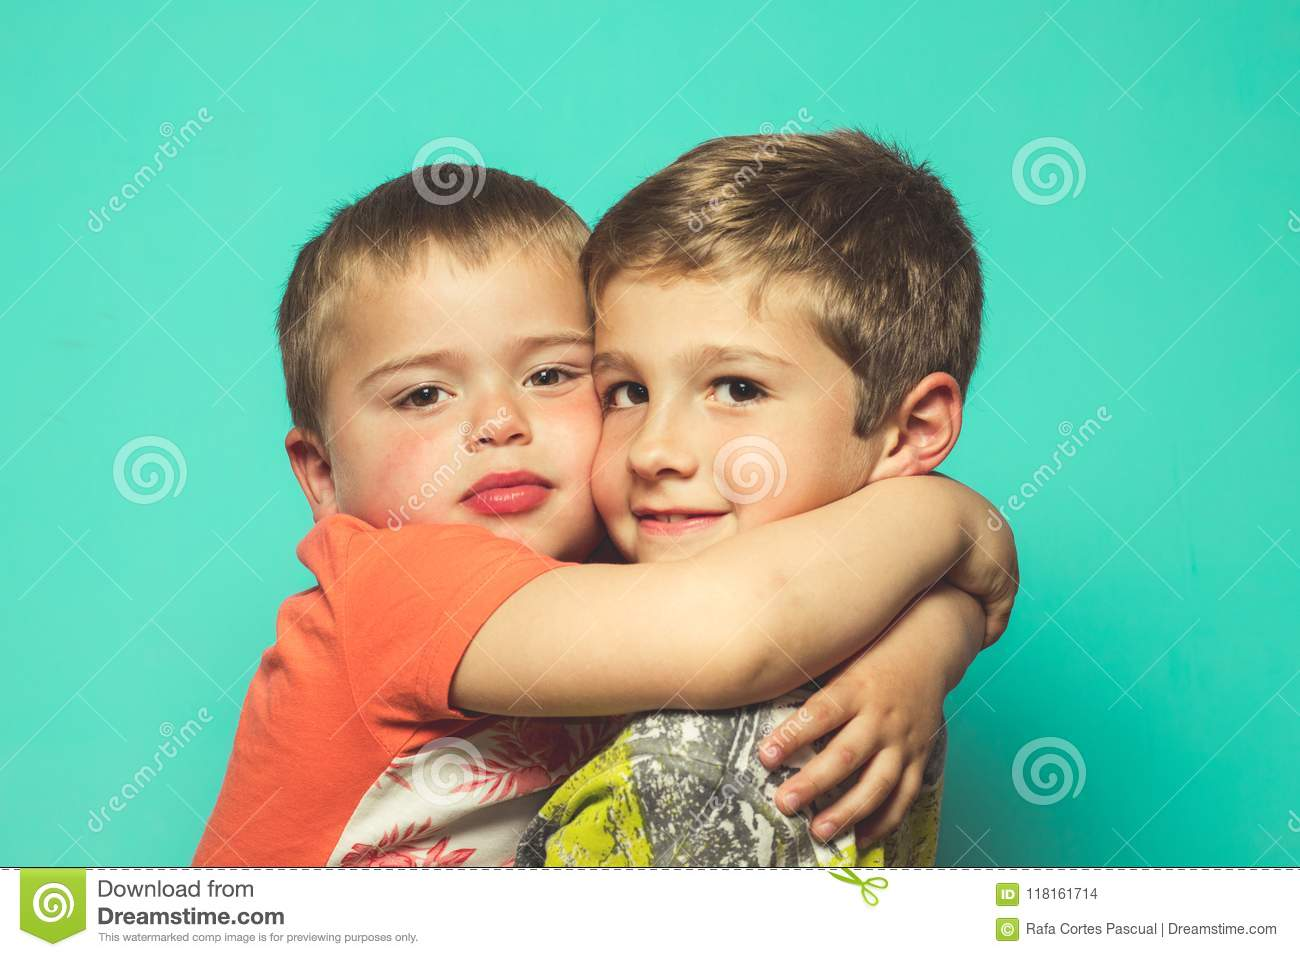 Children hugging each other stock images download 743 photos - Children s day images download ...